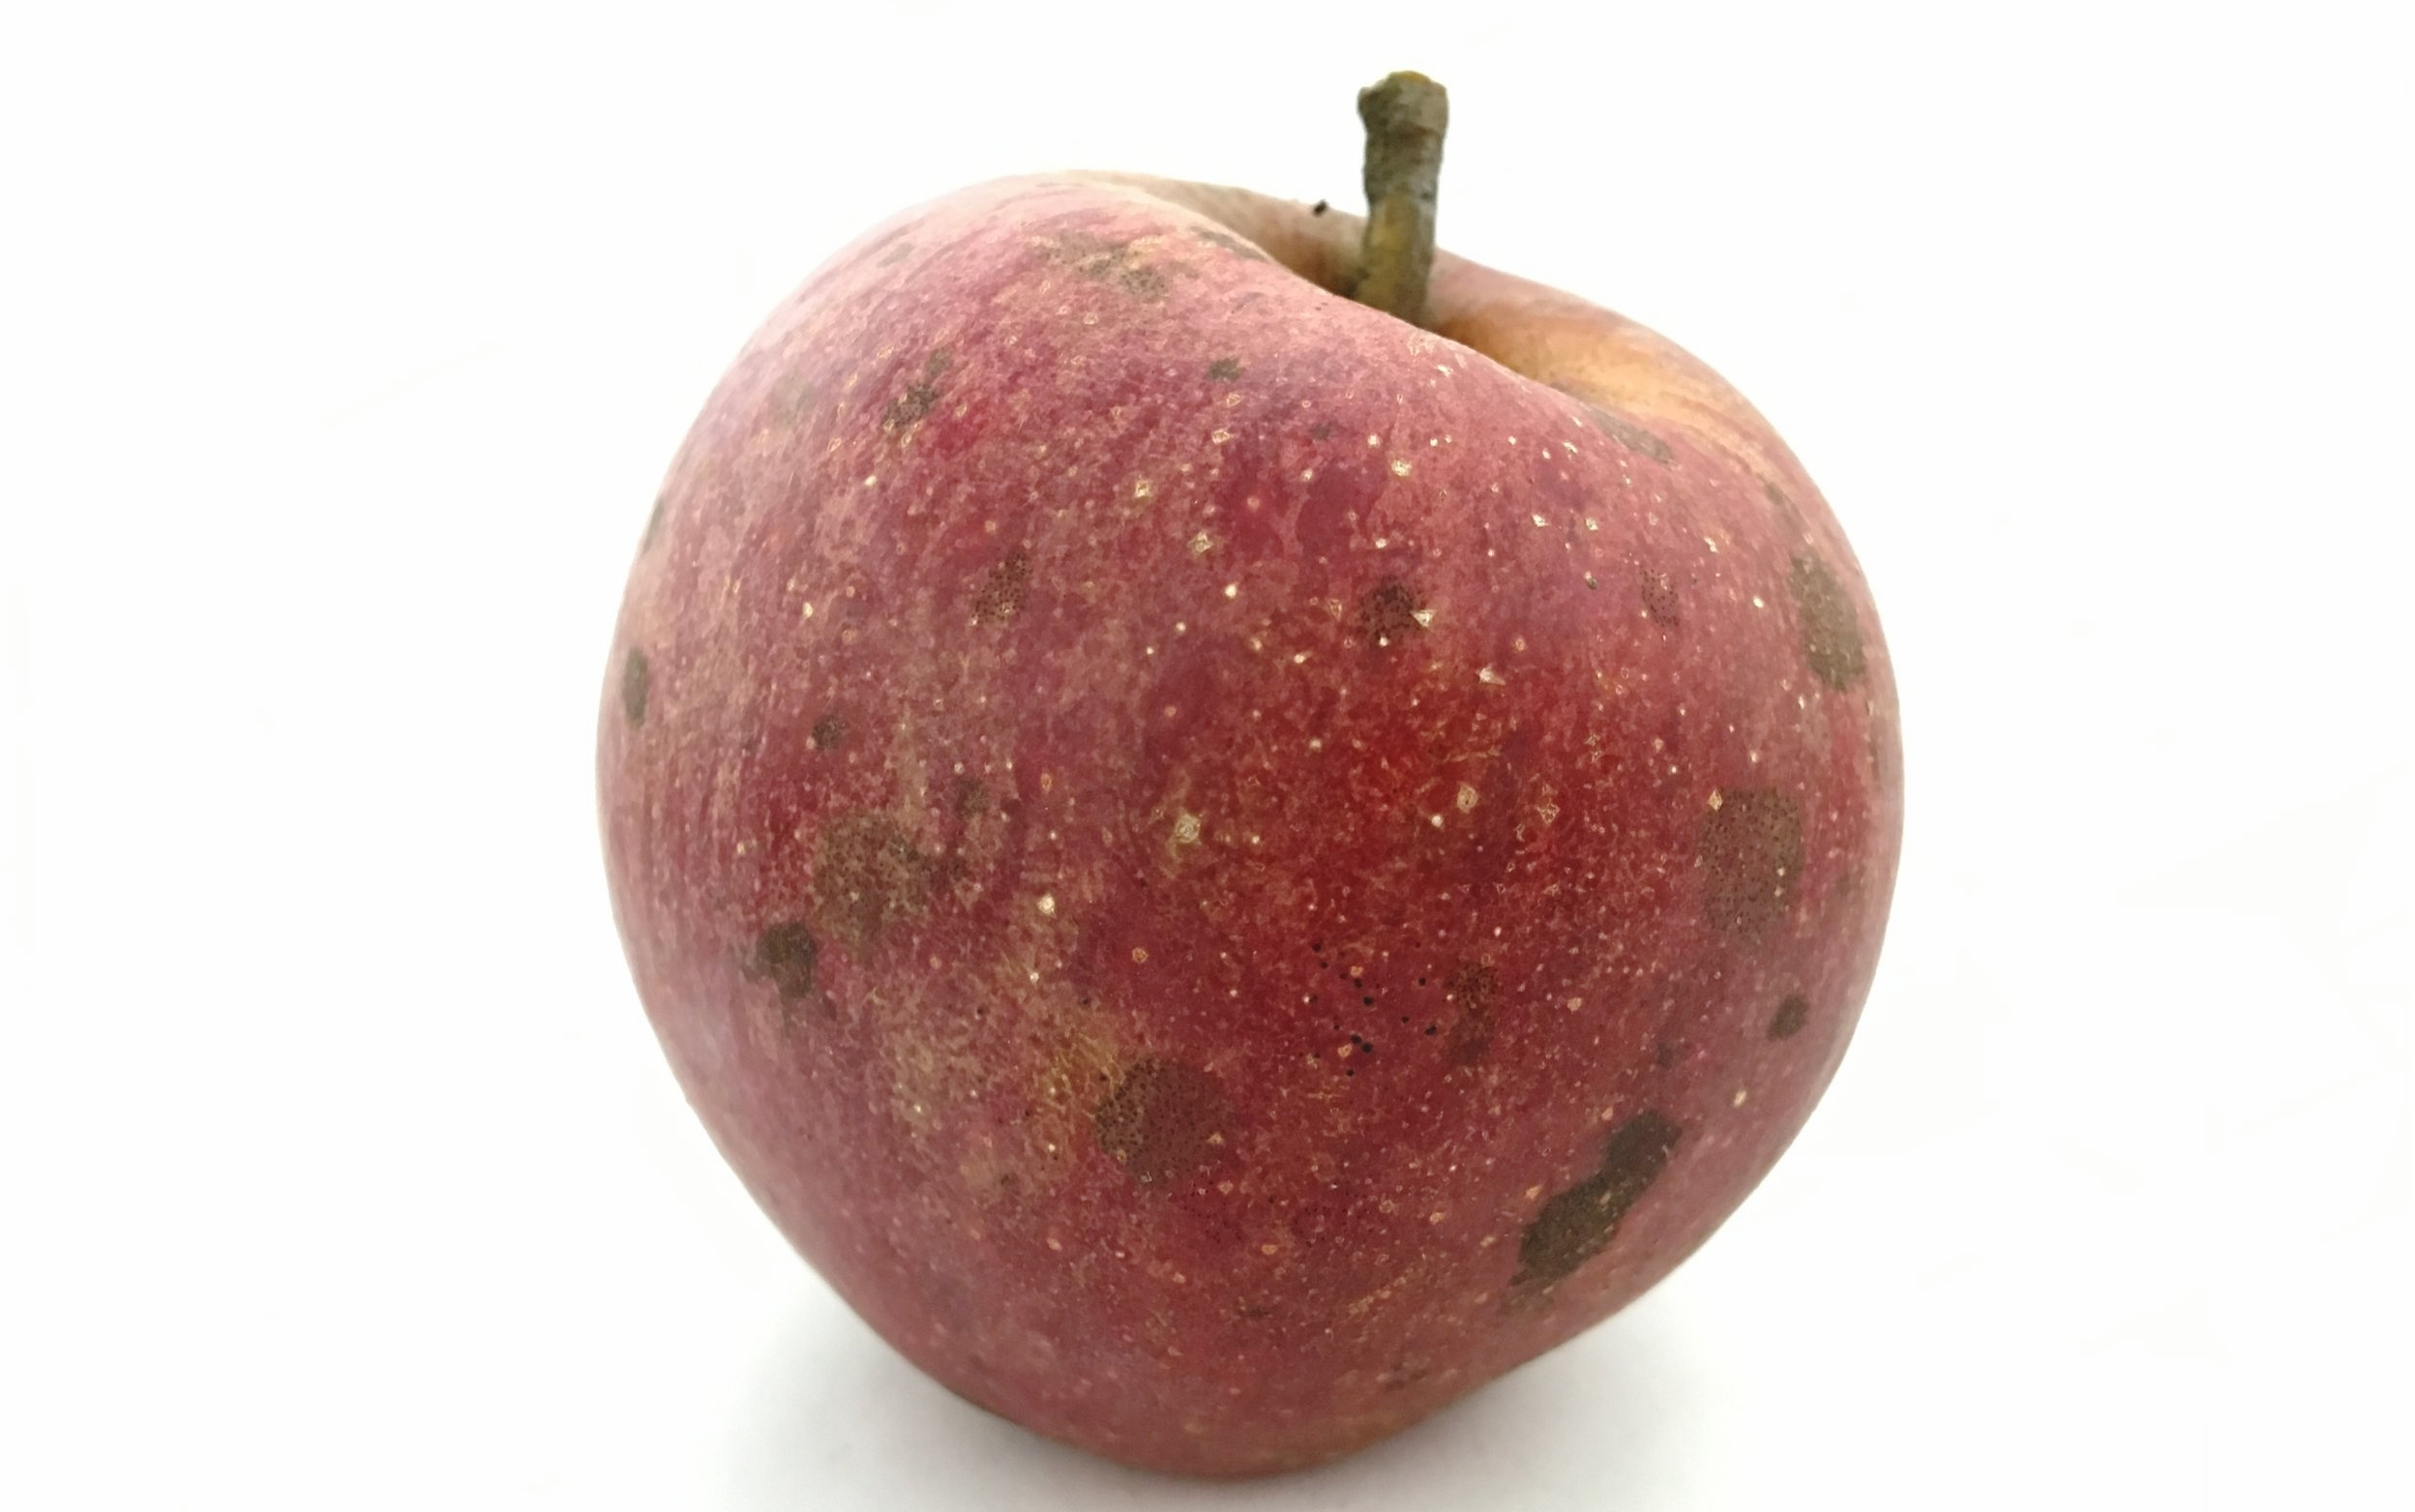 Cider Apple Evaluations Link